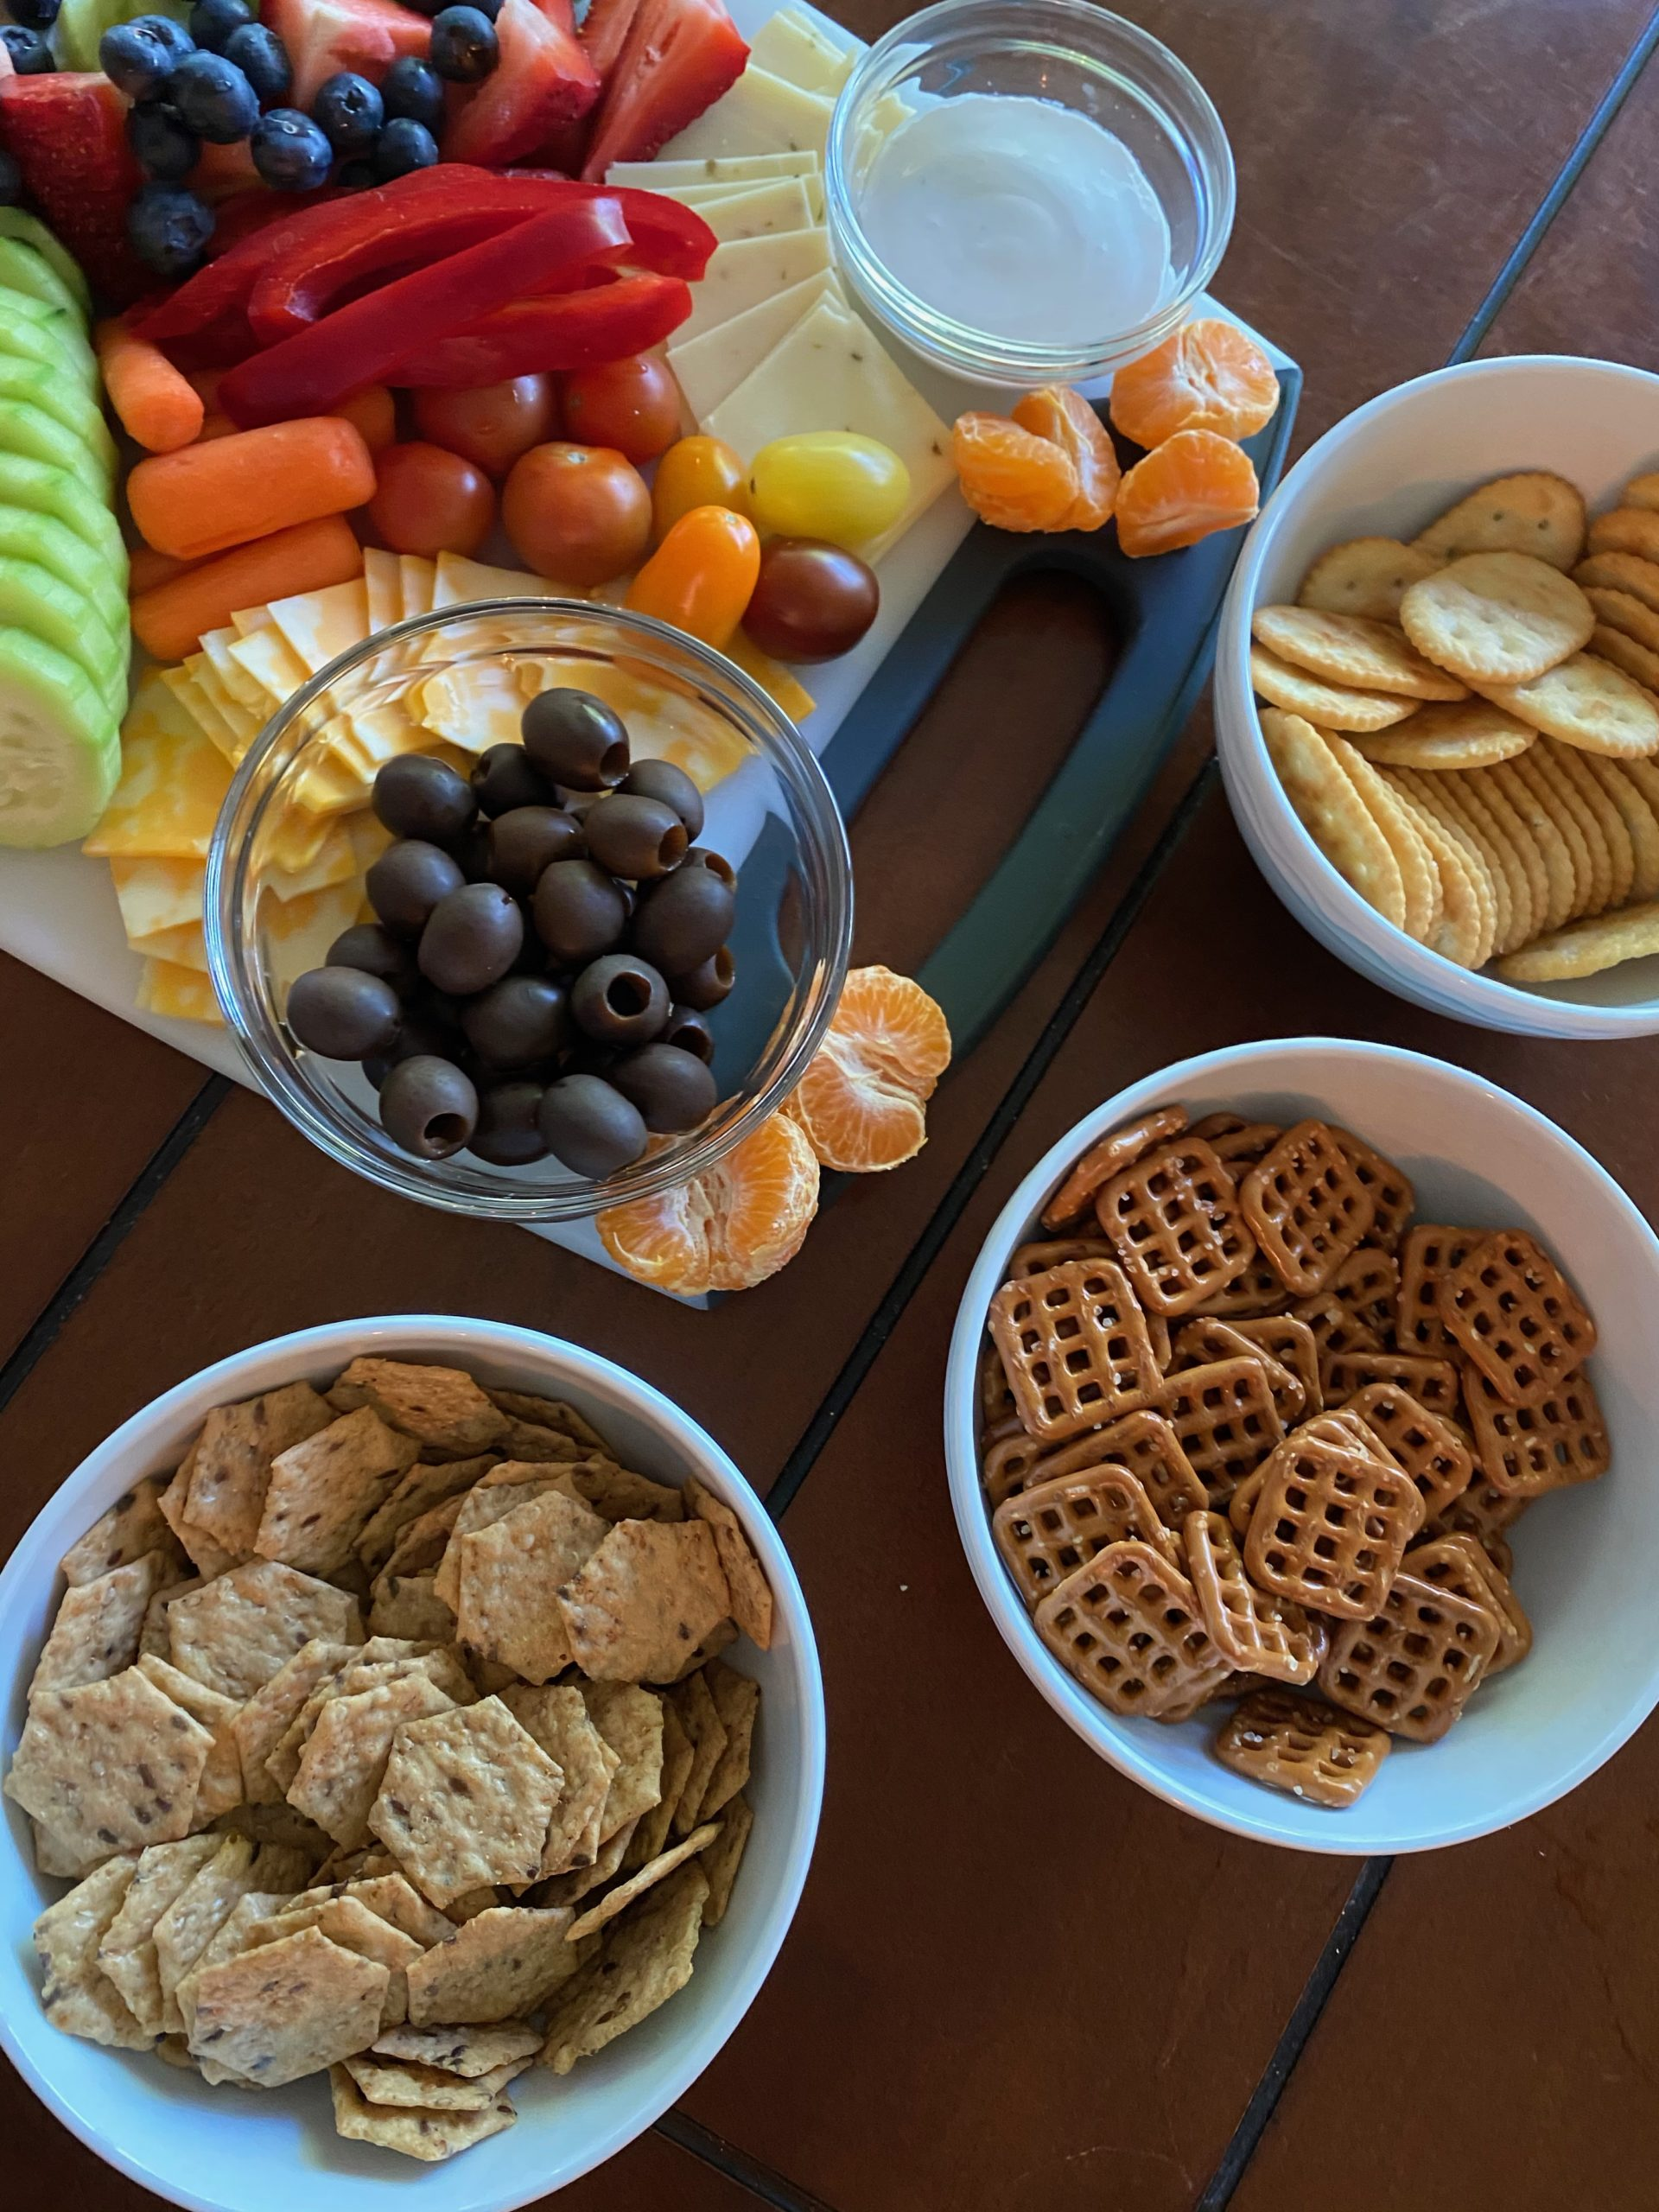 snacks on board and in bowls